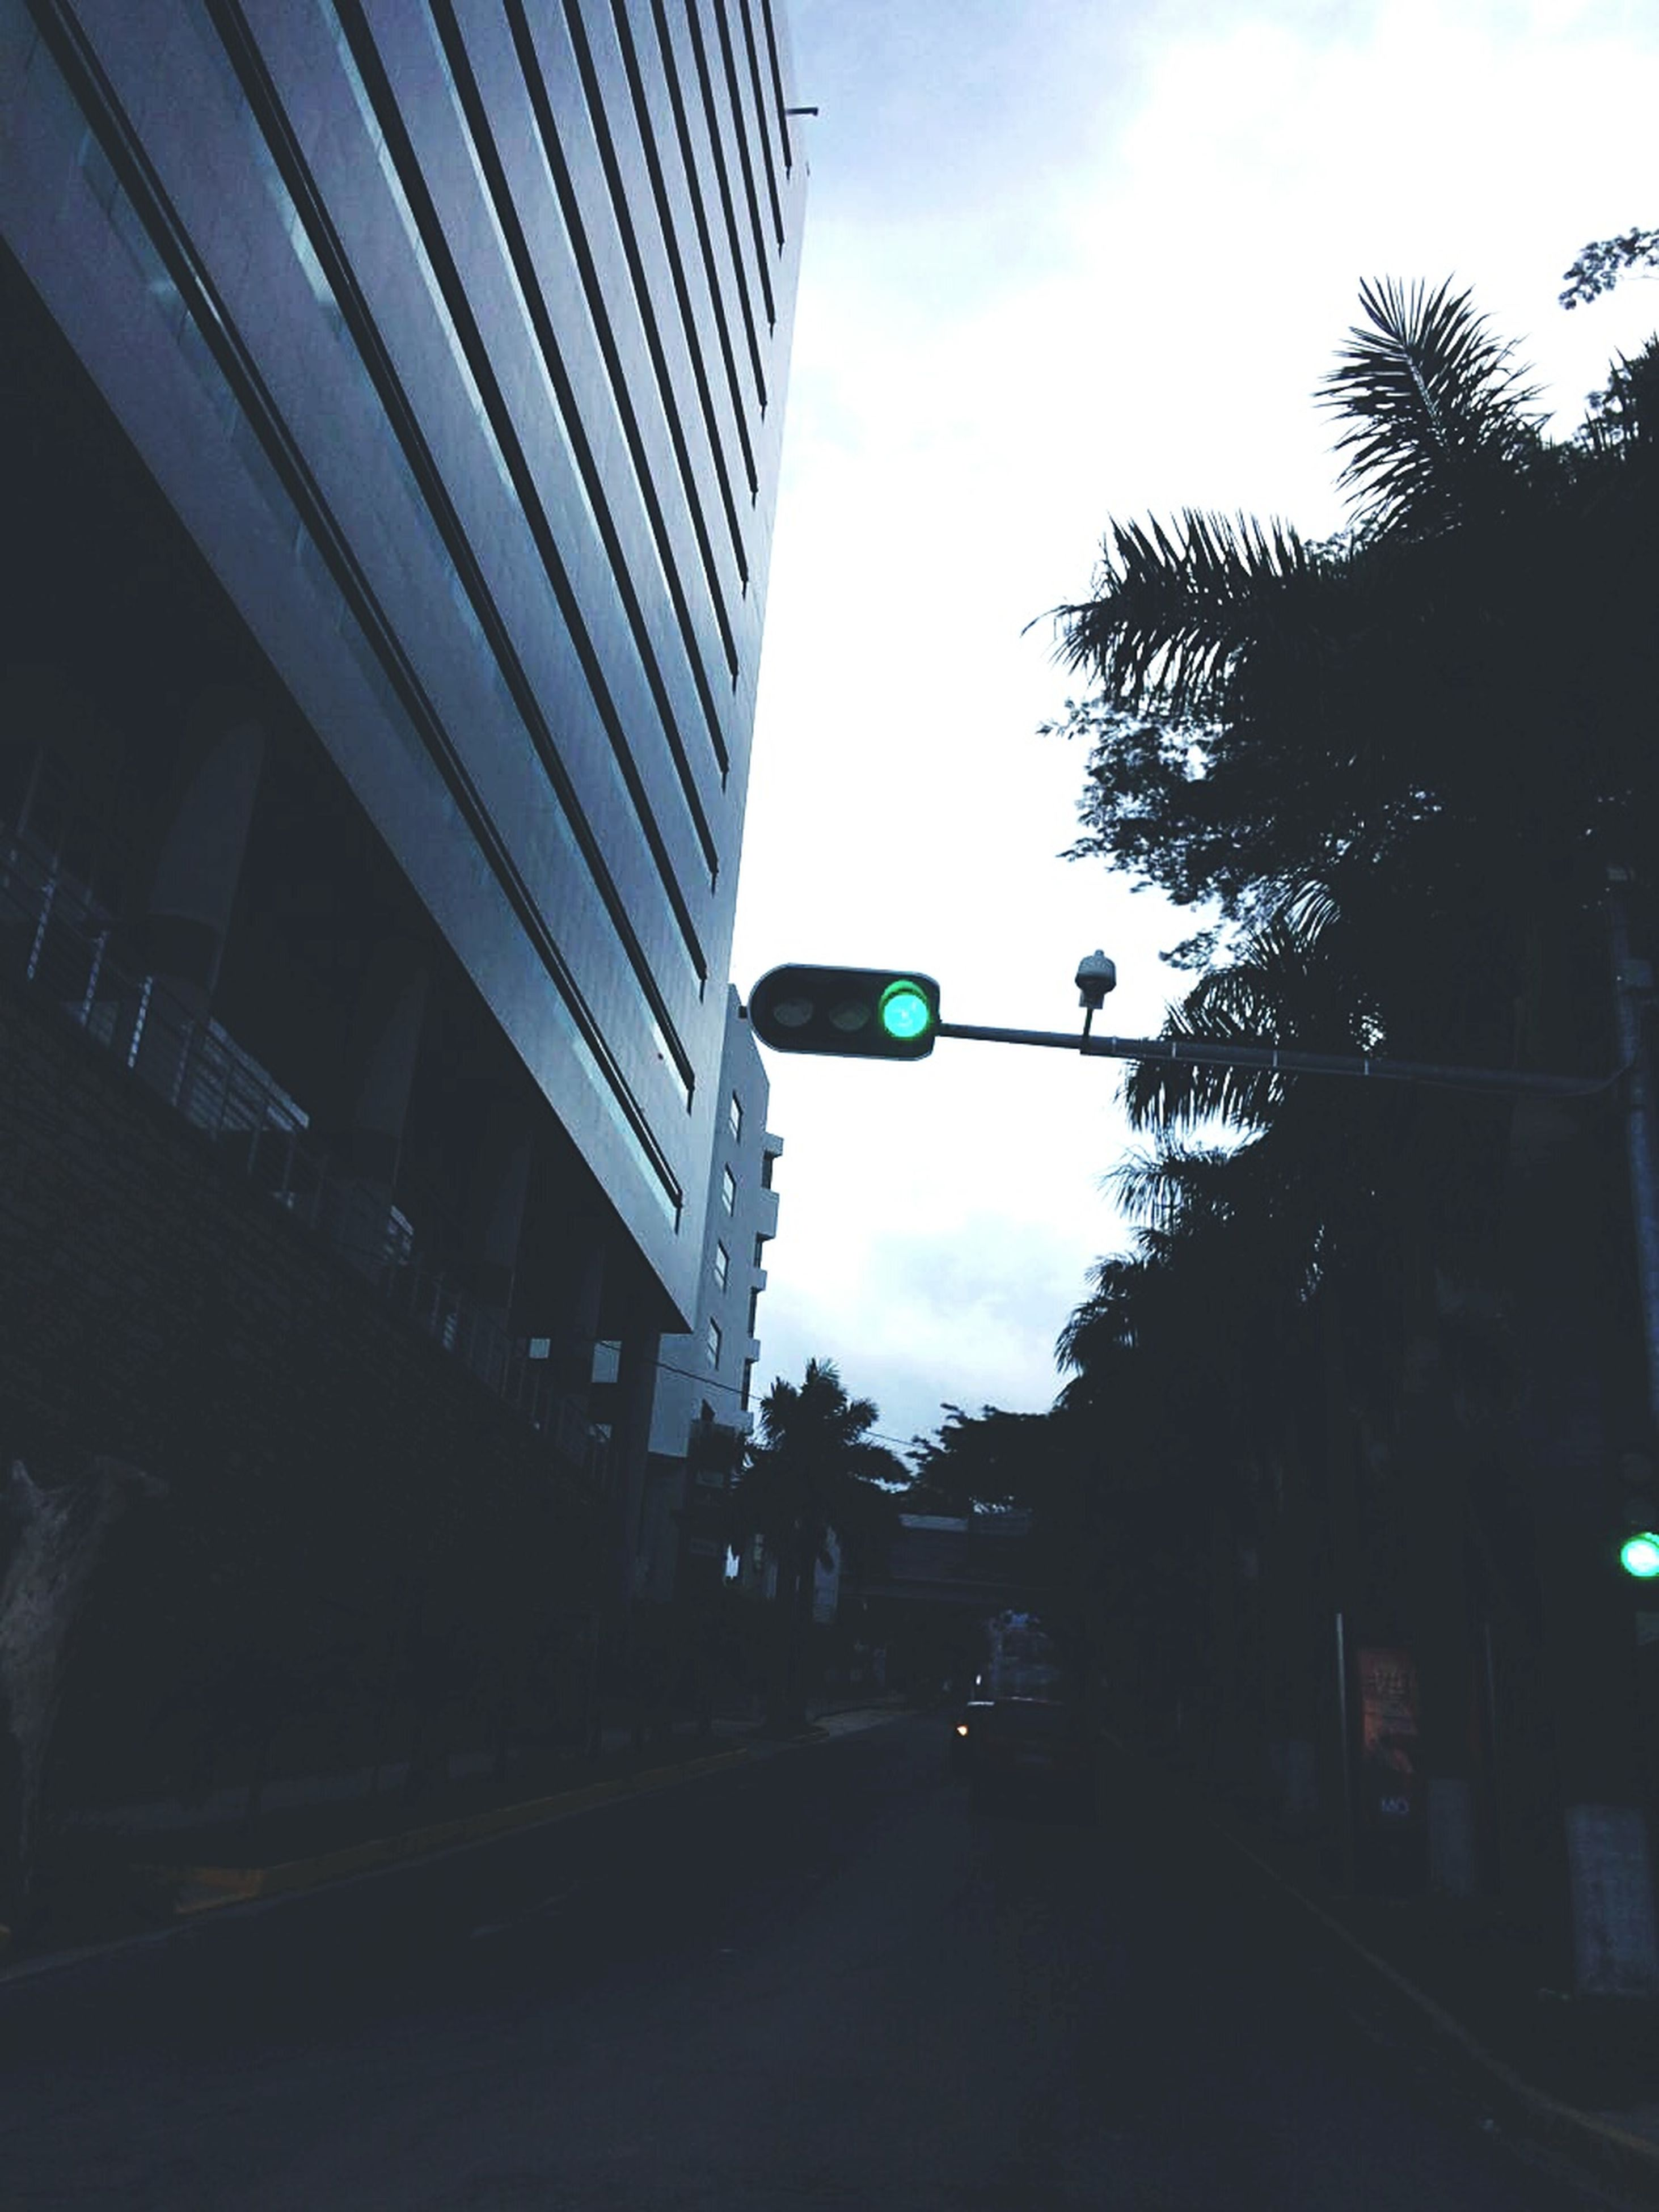 architecture, tree, street, building exterior, built structure, city, road, road signal, green light, sky, cloud - sky, the way forward, flag, outdoors, cloud, city life, day, modern, diminishing perspective